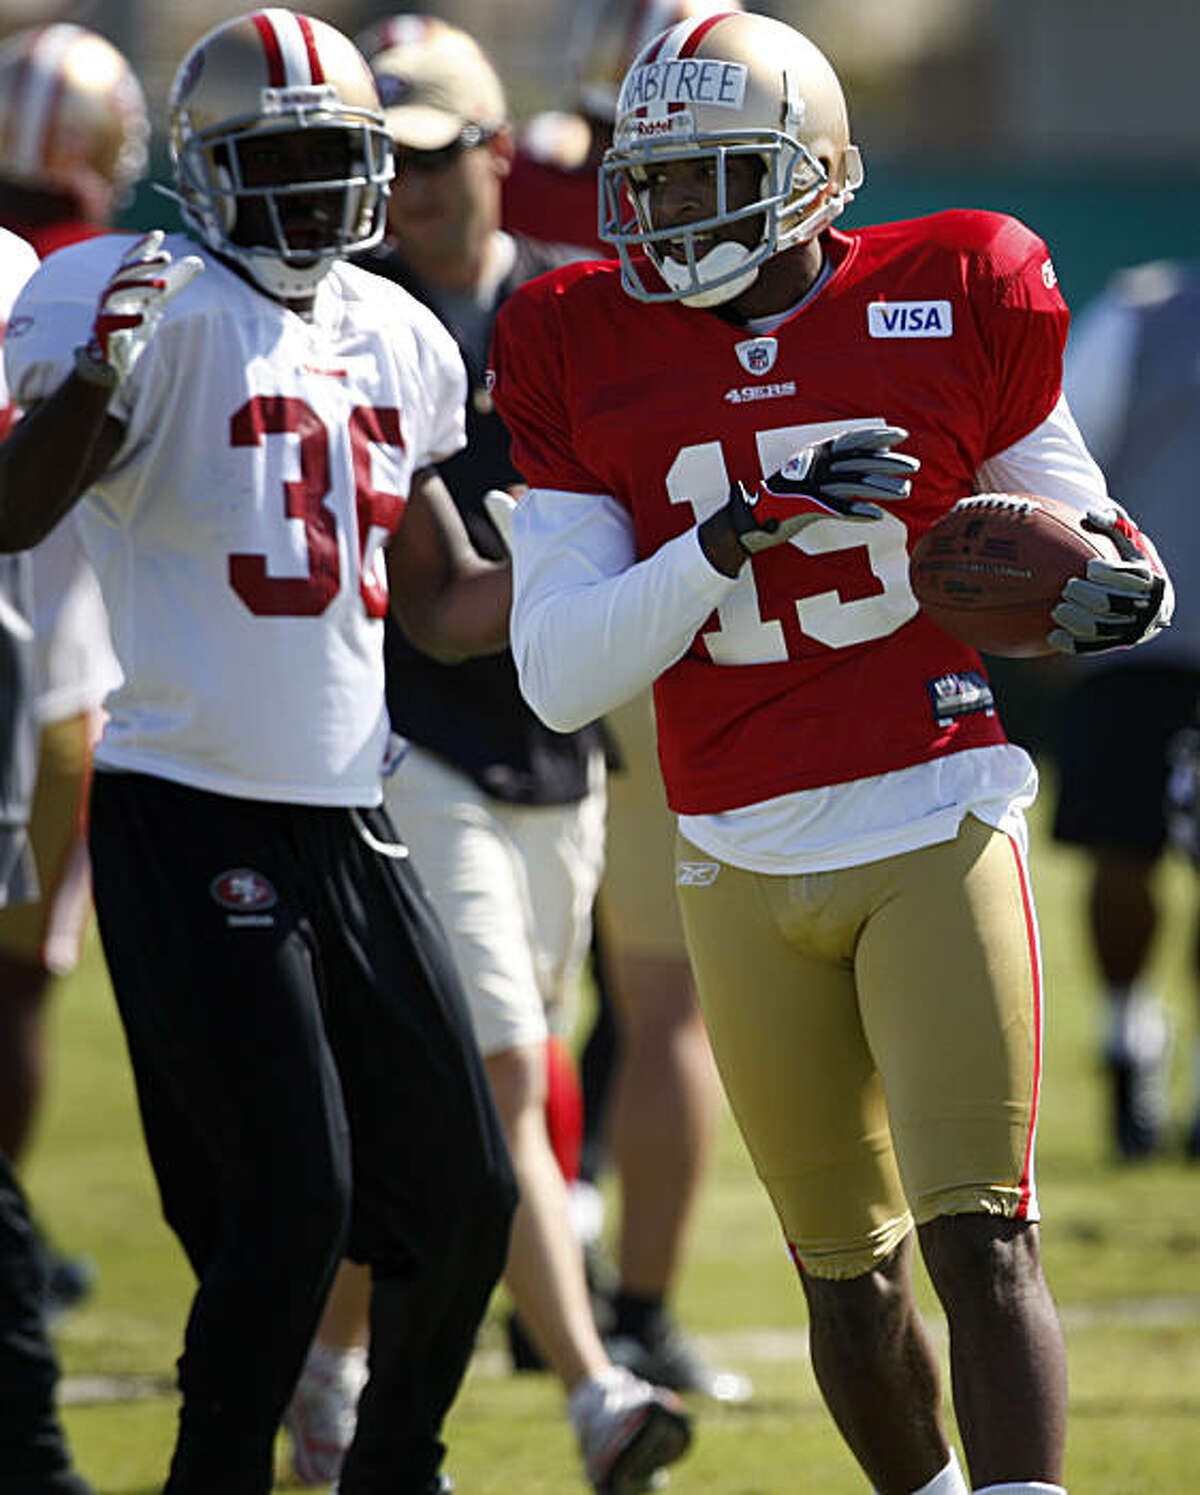 San Francisco 49ers wide receiver Michael Crabtree (right) participates in his first practice in Santa Clara.